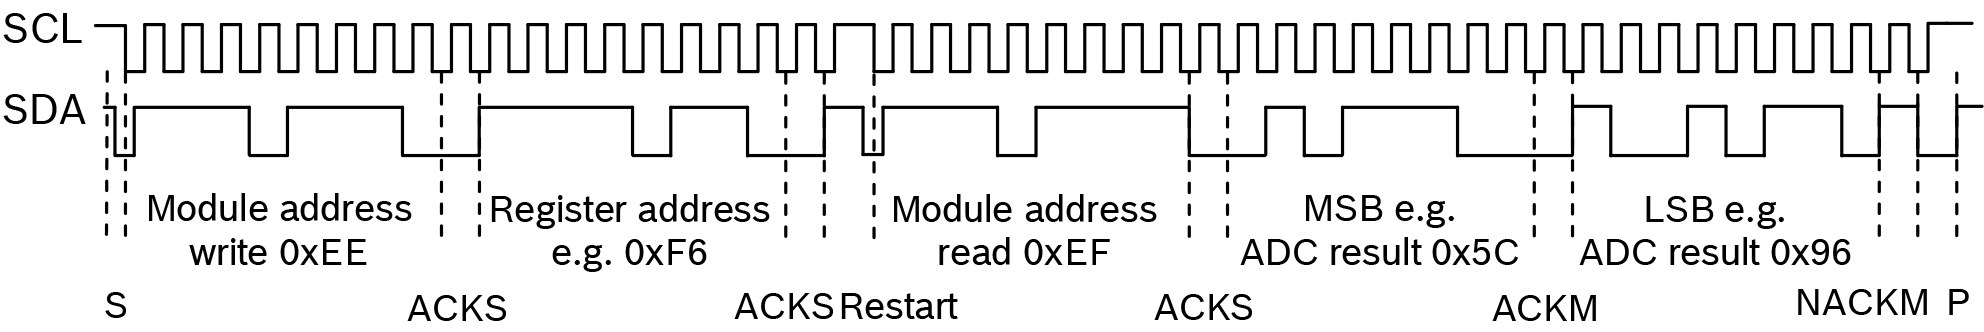 First hands-on with I2C - The Answer is 27